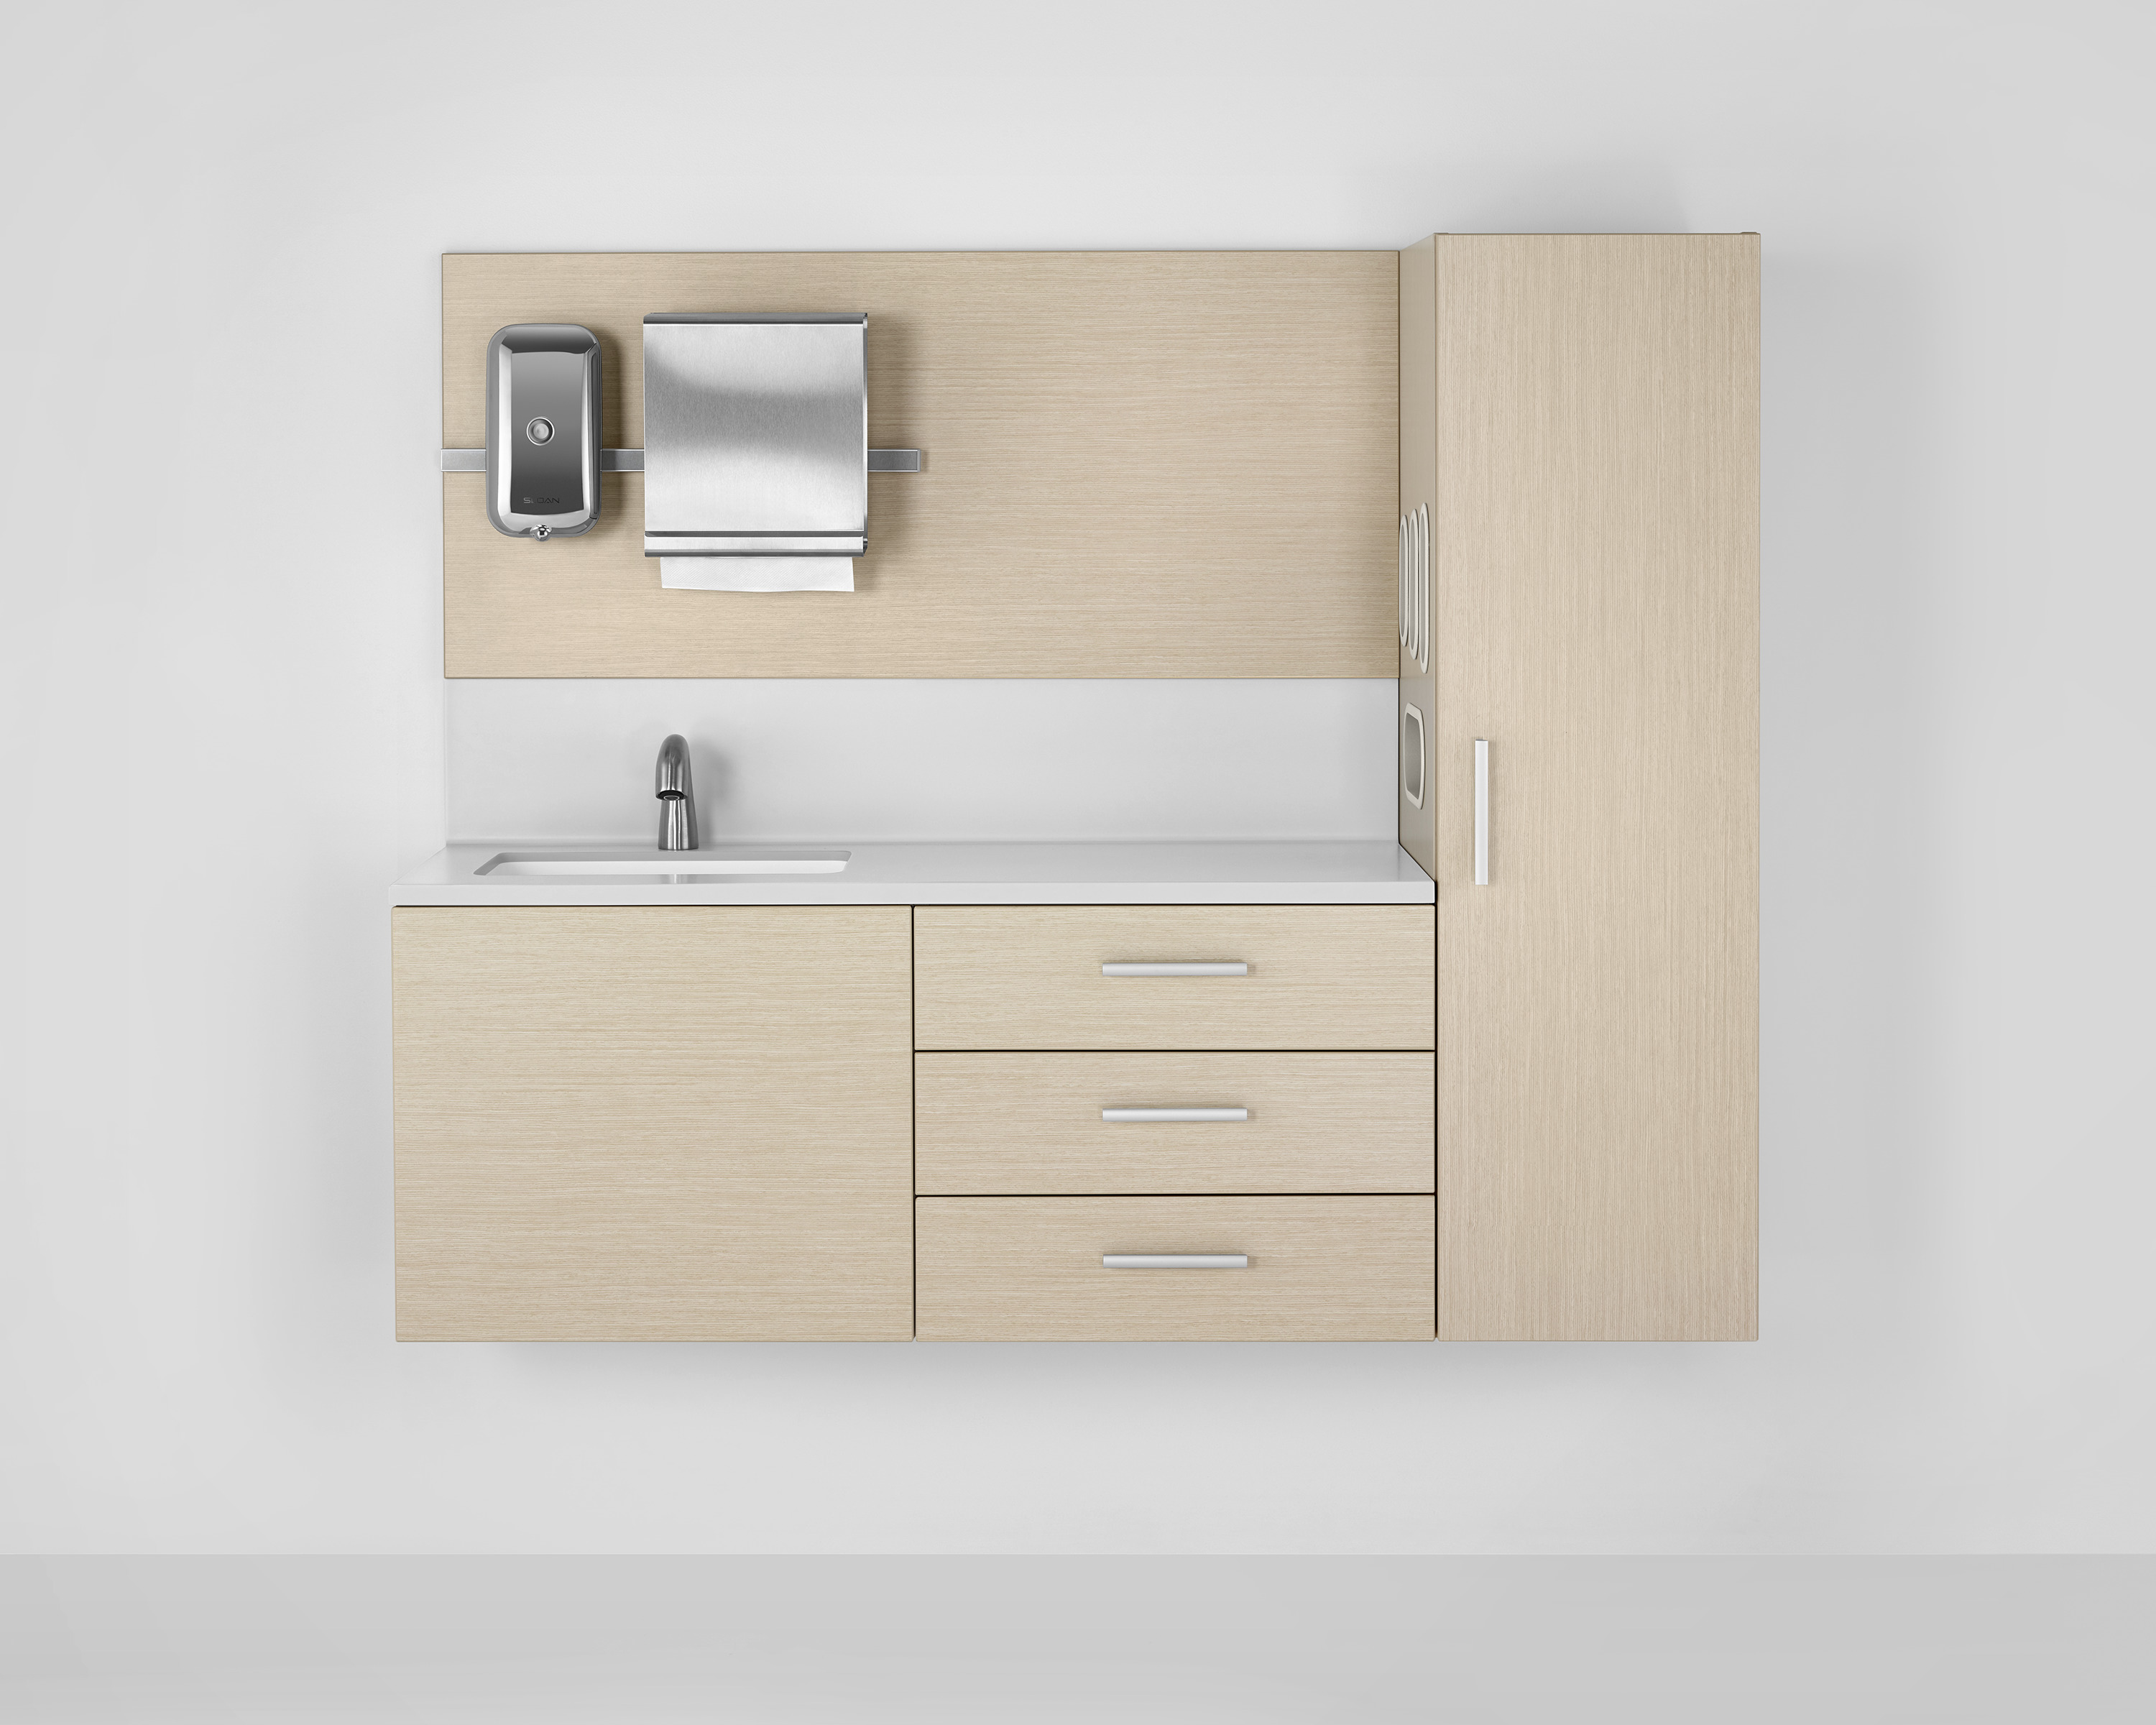 Mora Product Images - Healthcare Systems Furniture - Herman Miller